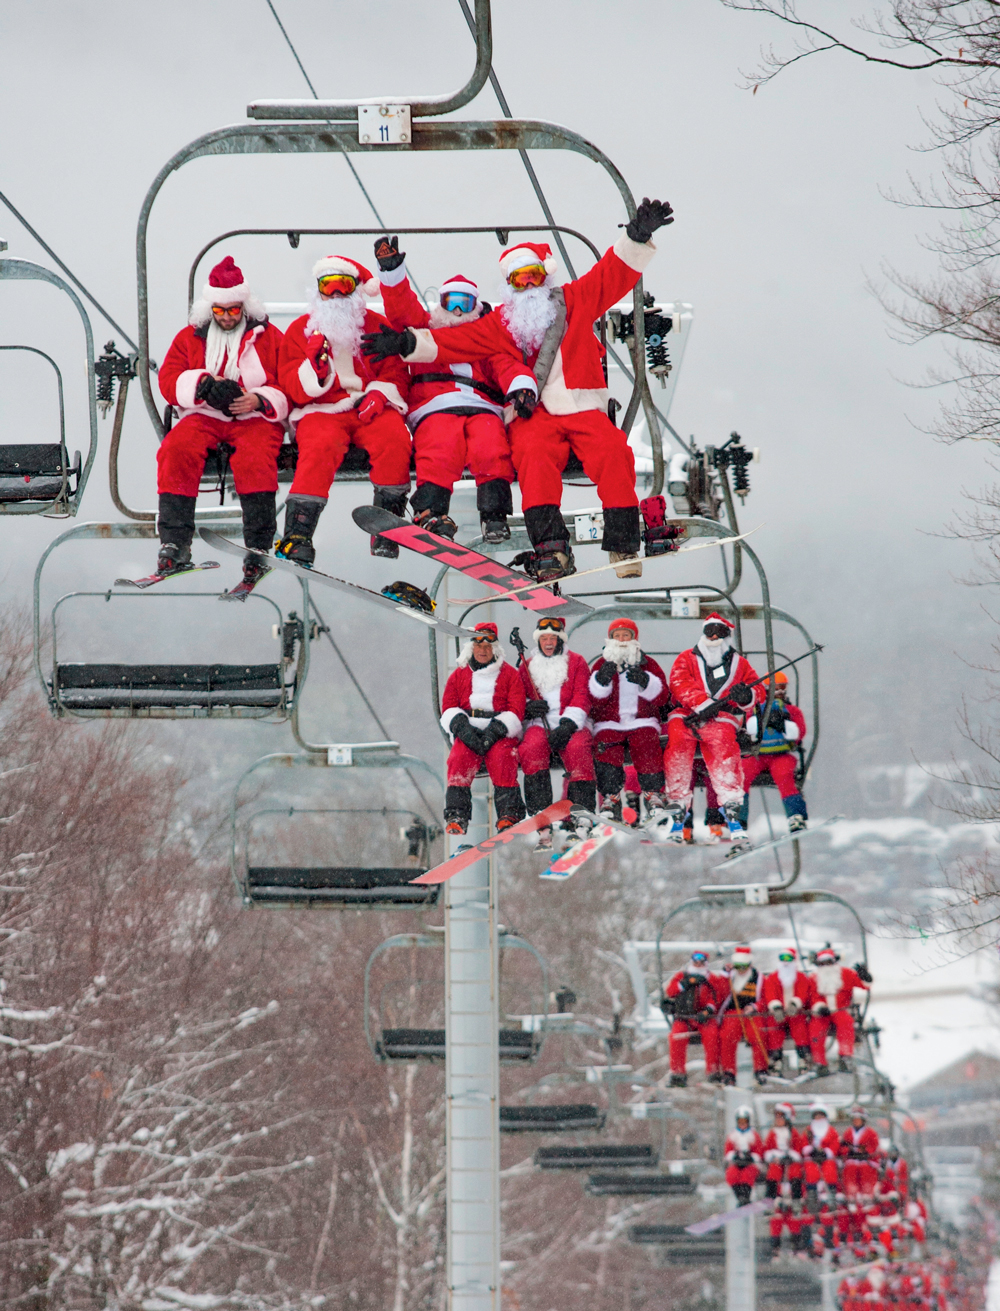 New England Holiday Events for 2019